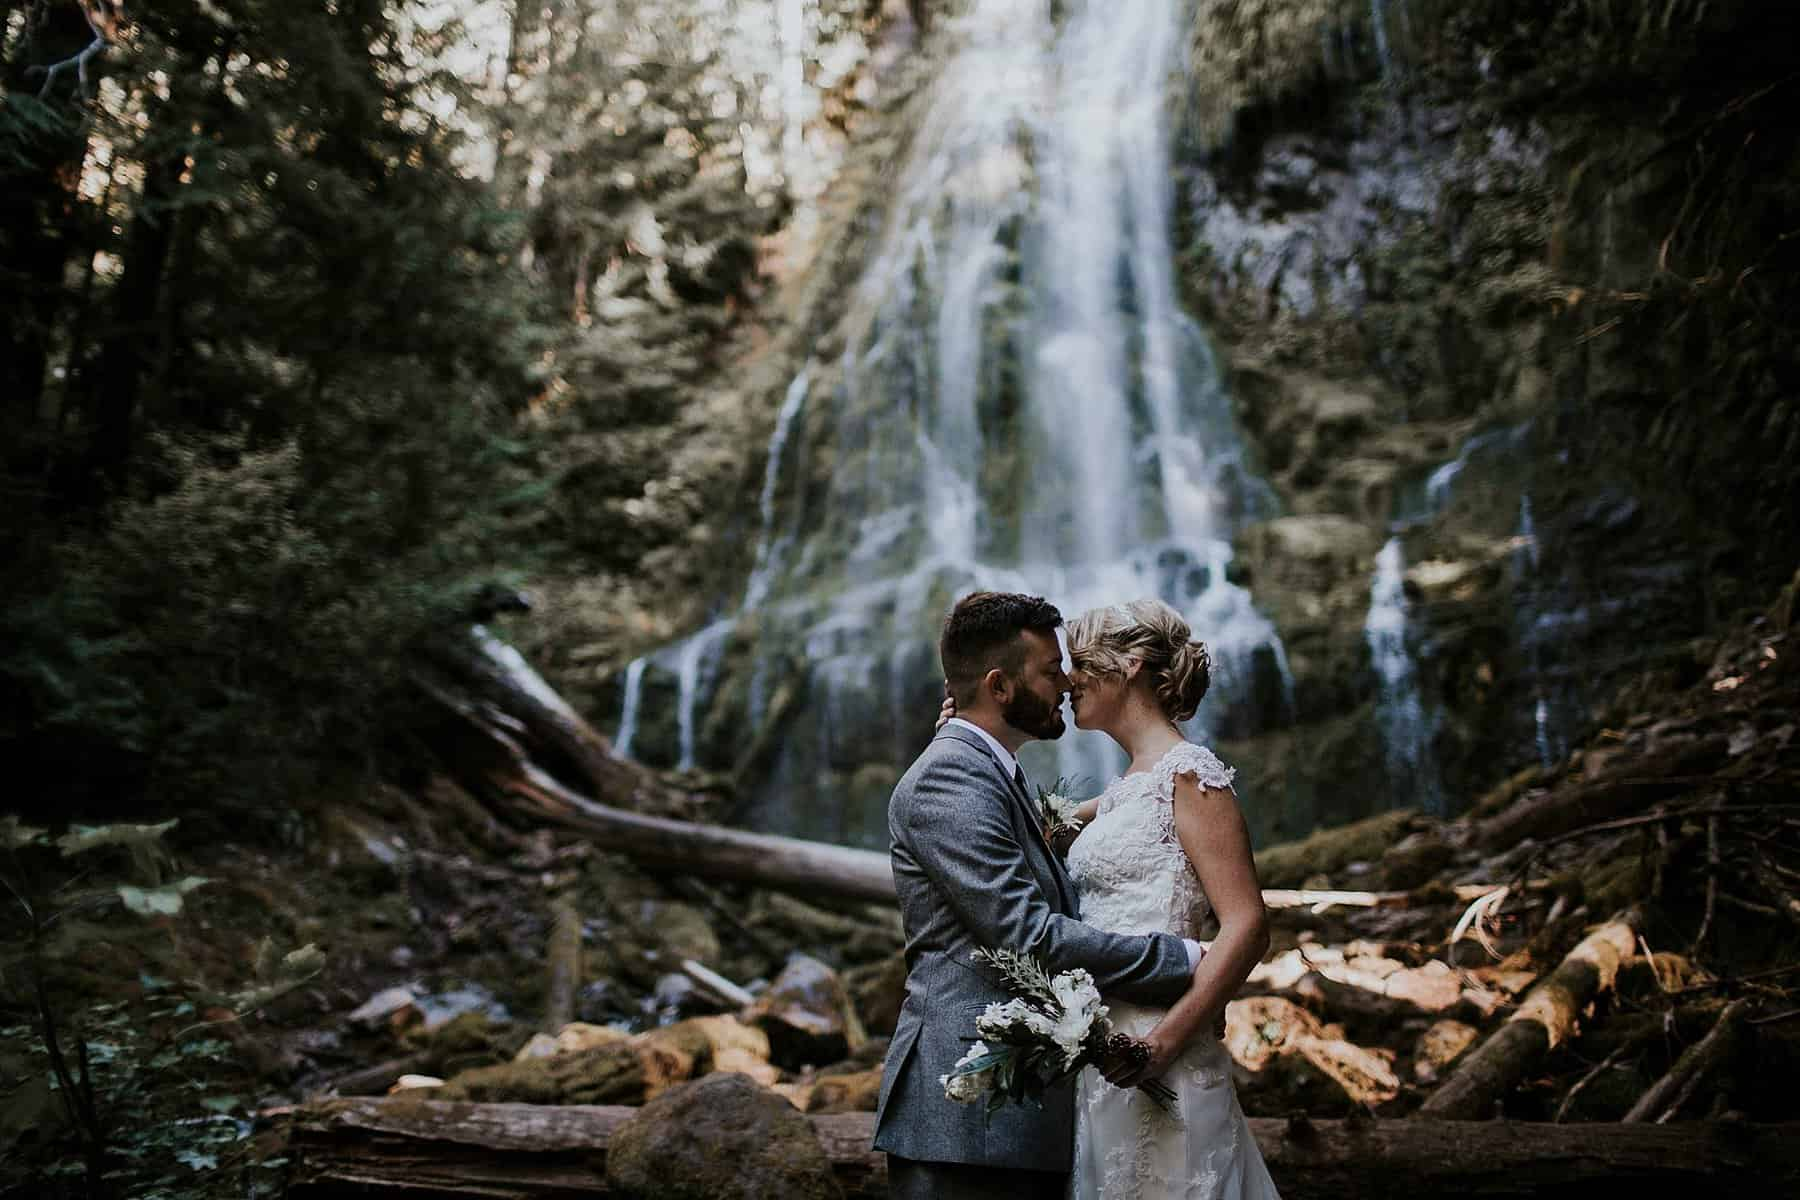 bend-central-oregon-waterfall-adventure-wedding-elopement-002